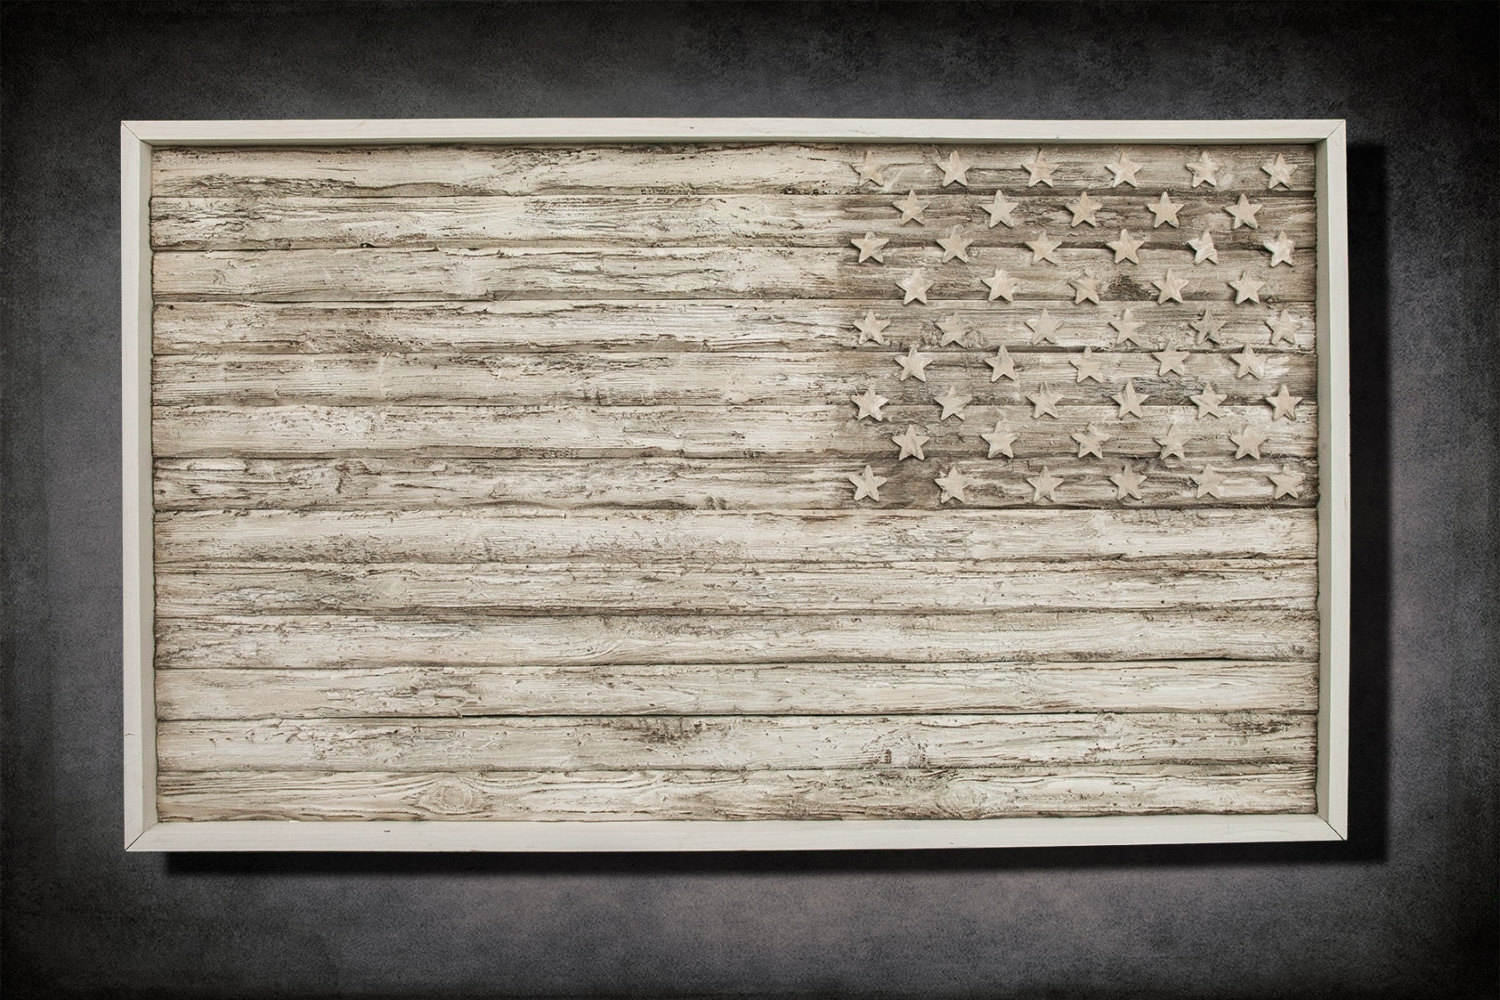 American Flag, Weathered Wood, One Of A Kind, 3D, Wooden, Vintage Within Well Known White Wooden Wall Art (View 7 of 15)